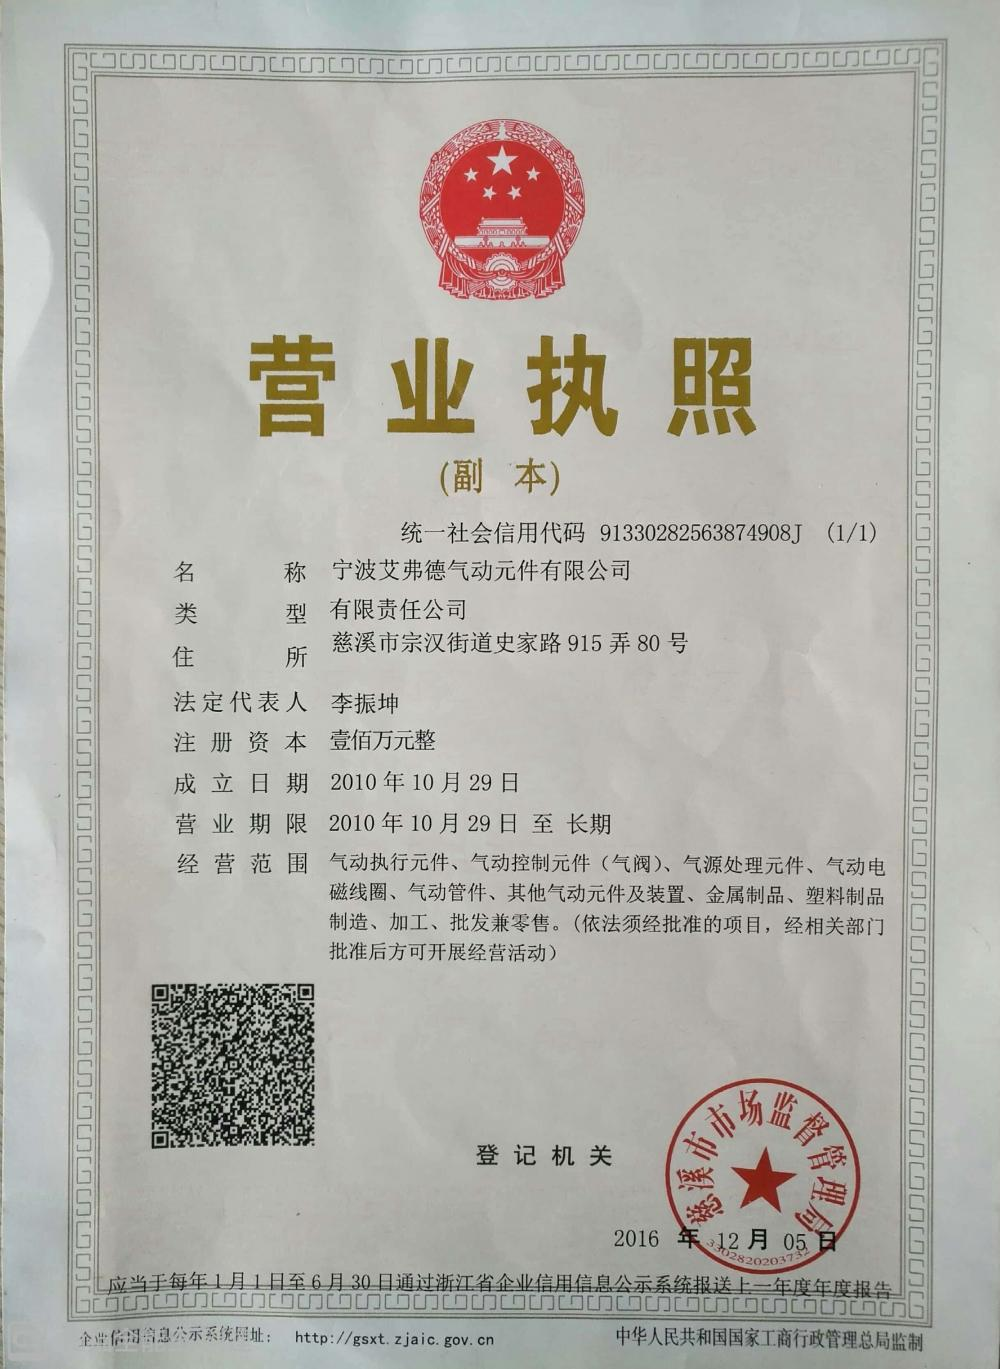 Business license of legal Entity